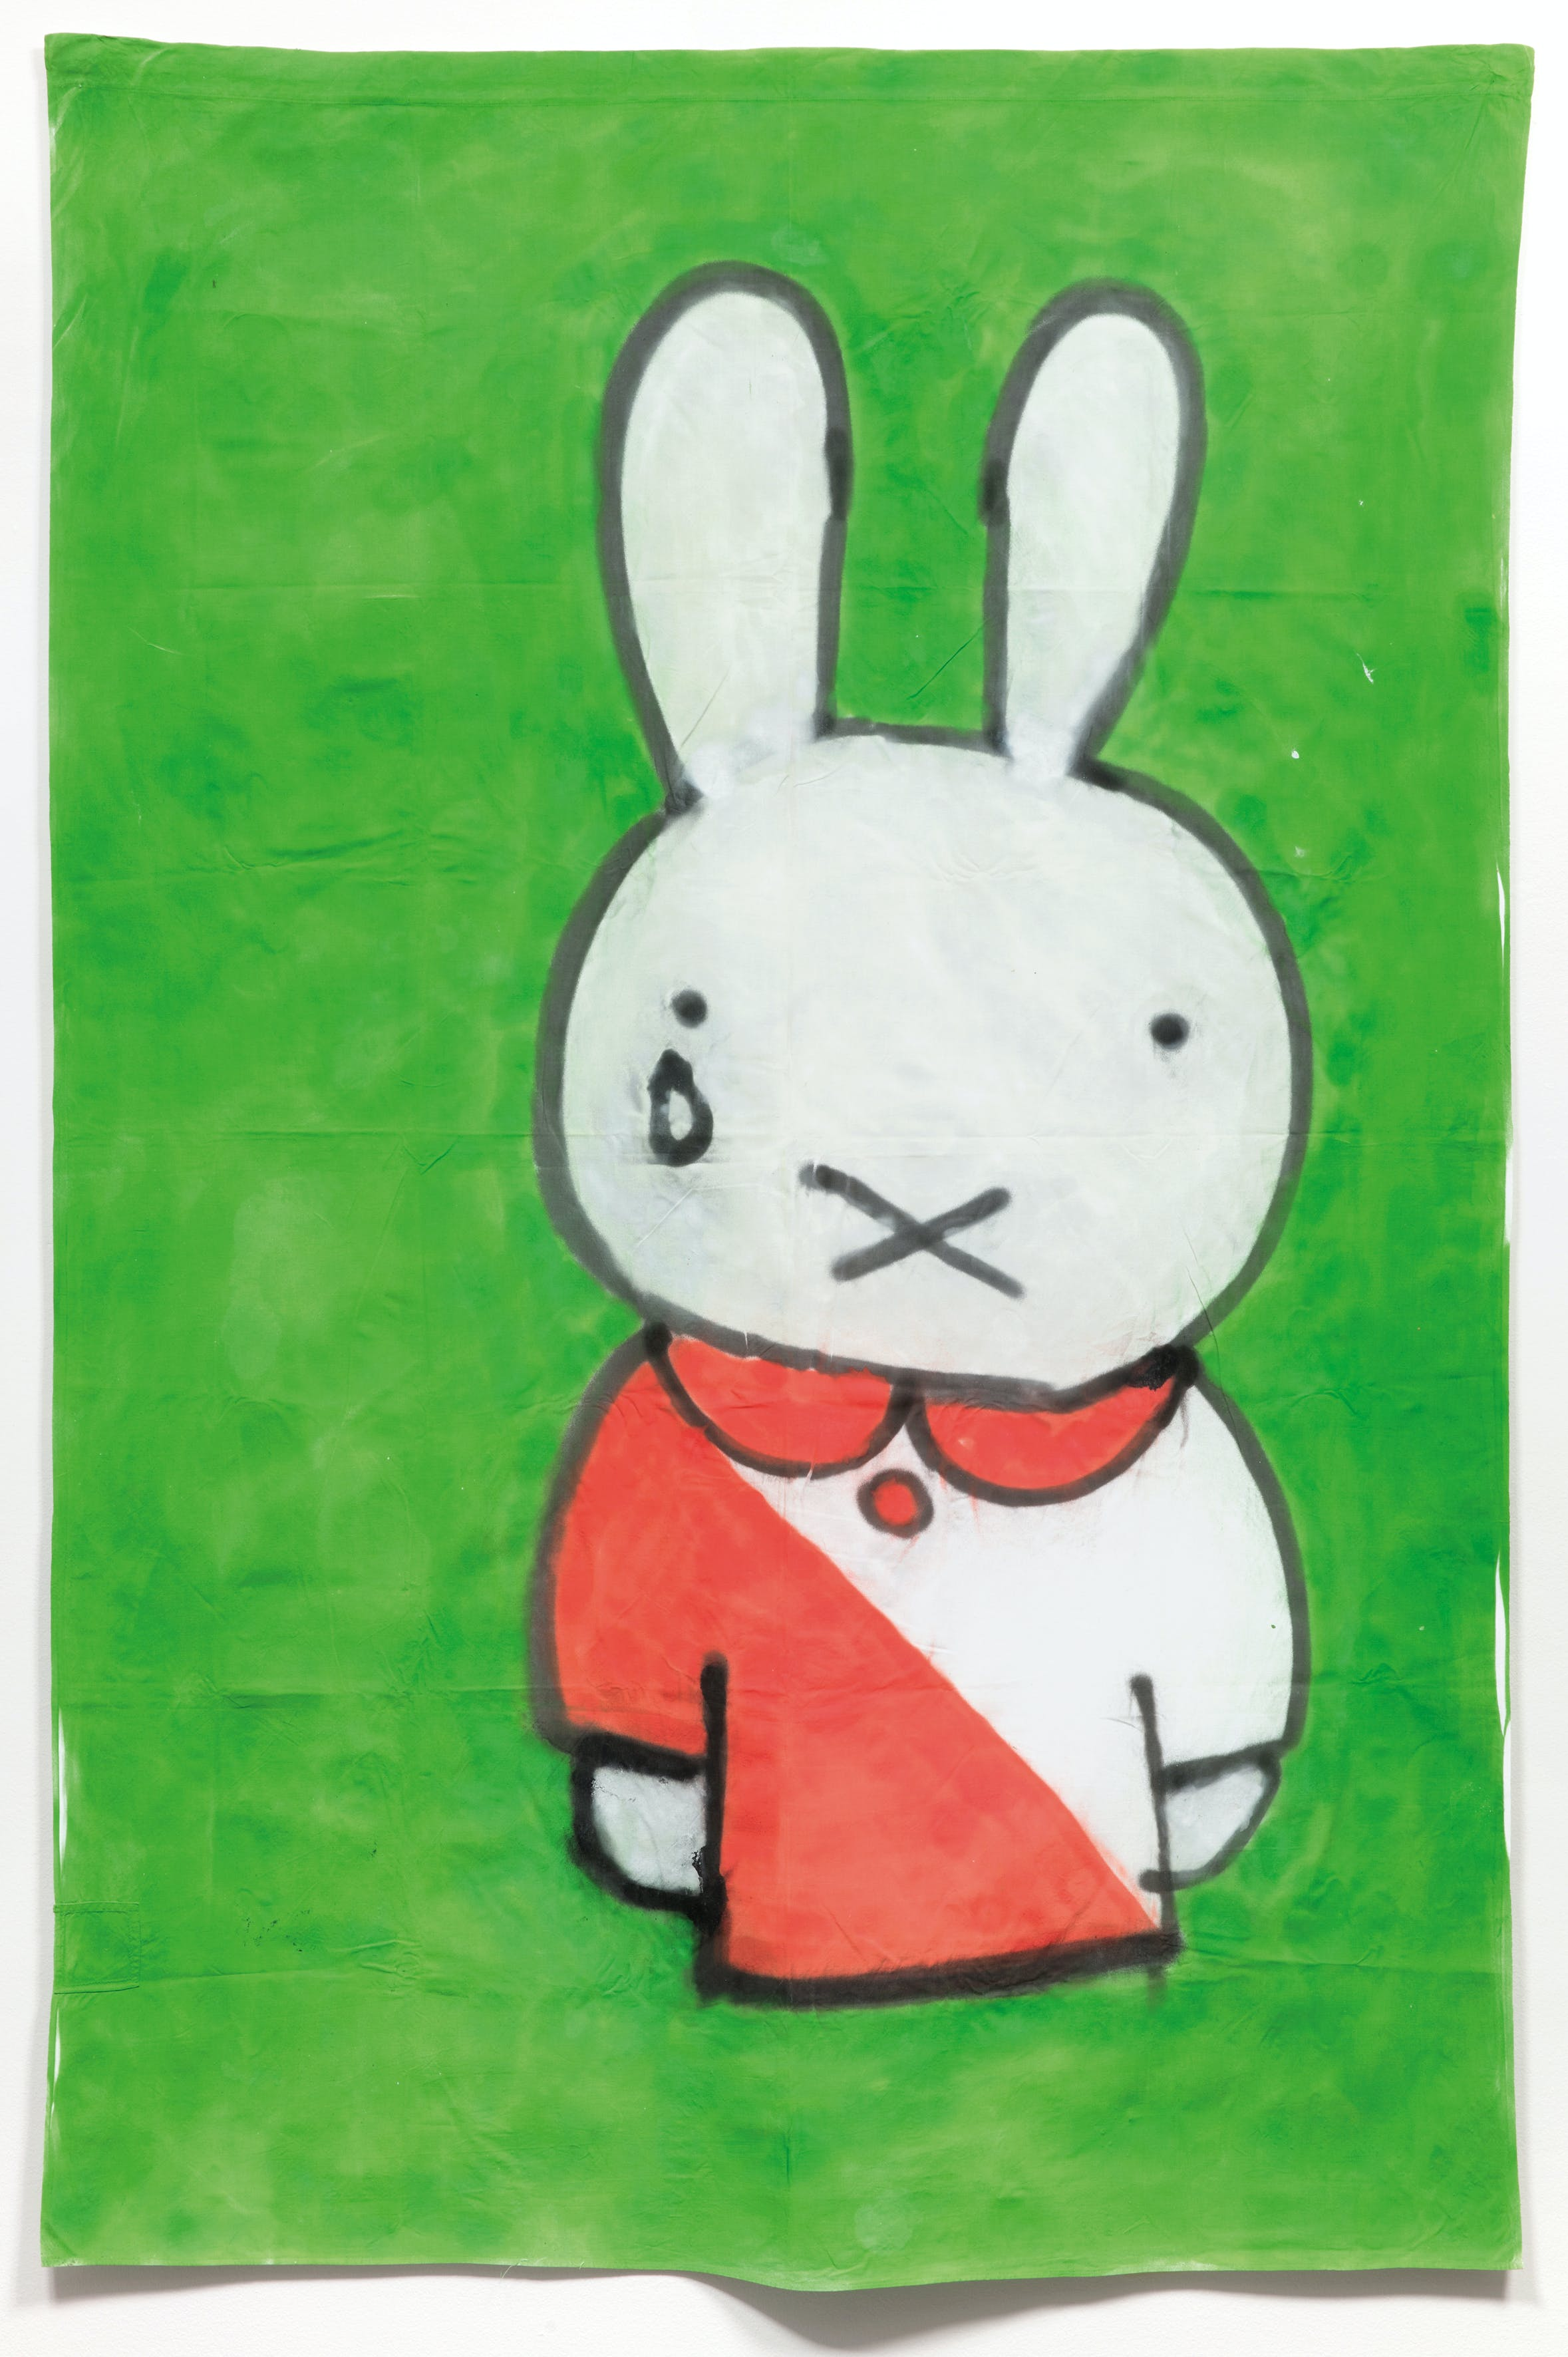 Banner depicting Miffy in FC Utrecht, made by supporters to mark the death of Miffy's creator Dick Bruna (2017), by Justin van den Eijnden, Tycho Oosterndorf and Jeroen Heisen, Centraal Museum, Utrecht, photo: CMU/Ernst Moritz